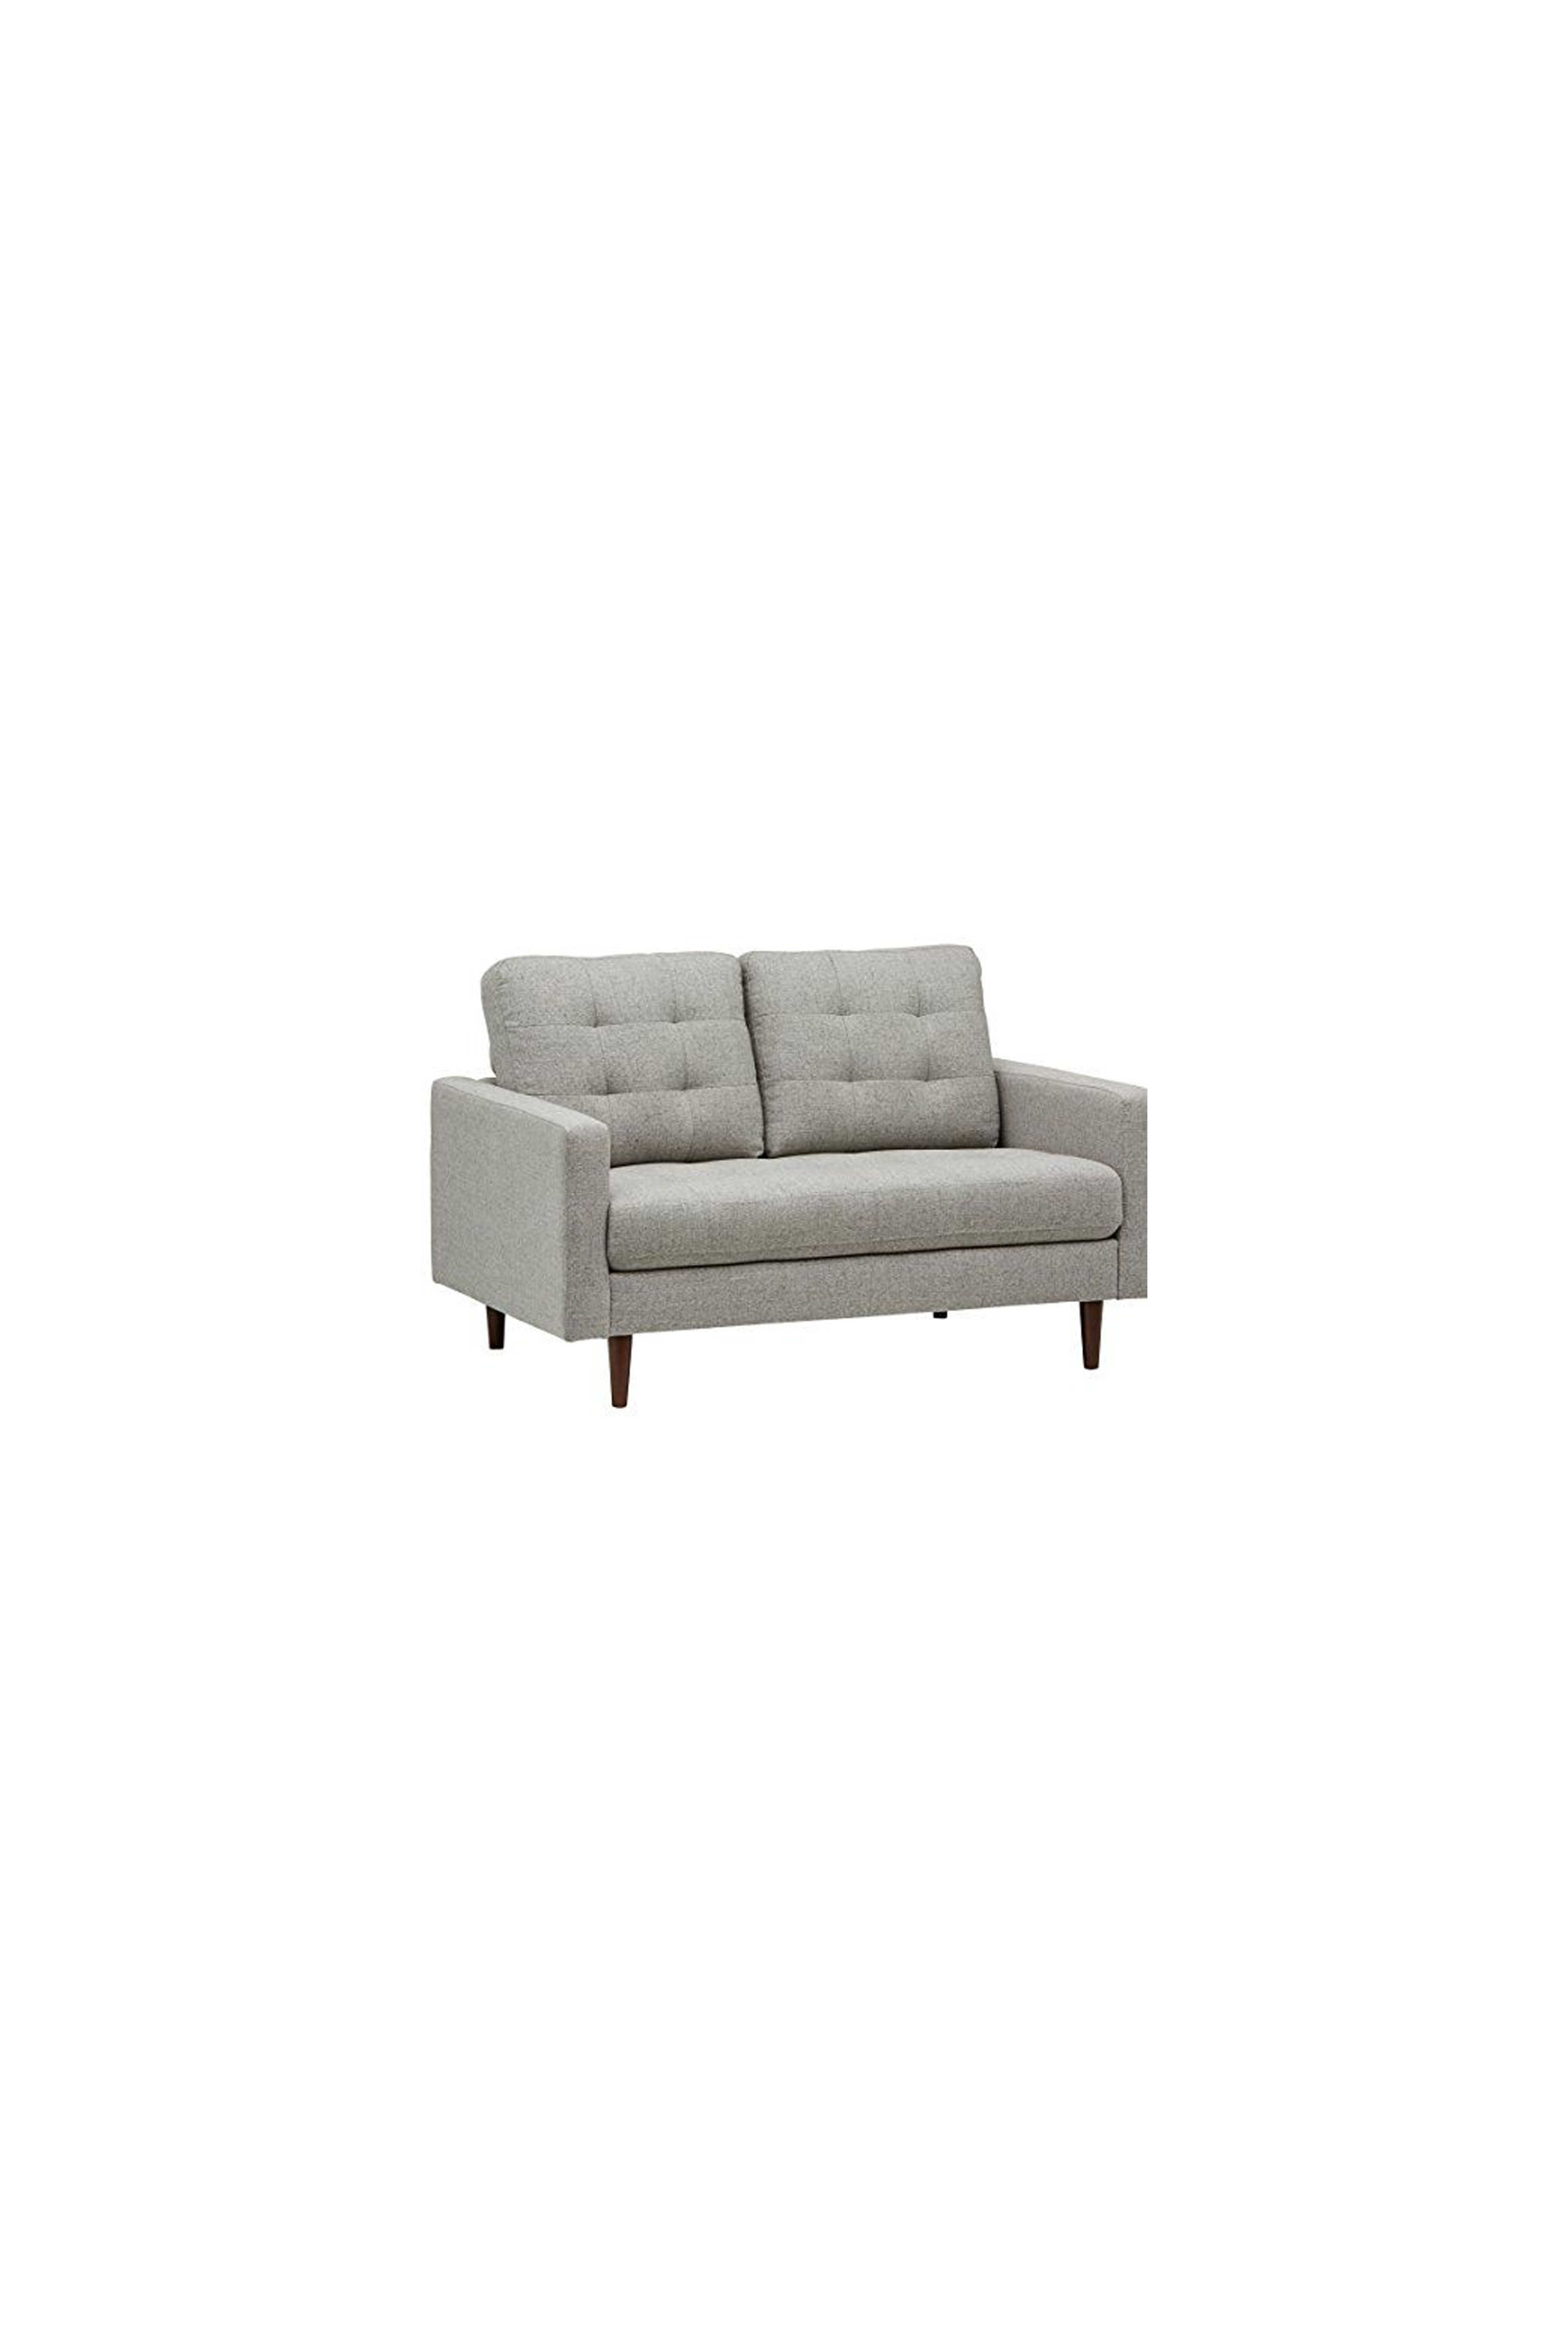 Surprising Rivet Cove Modern Tufted Loveseat With Tapered Legs Andrewgaddart Wooden Chair Designs For Living Room Andrewgaddartcom